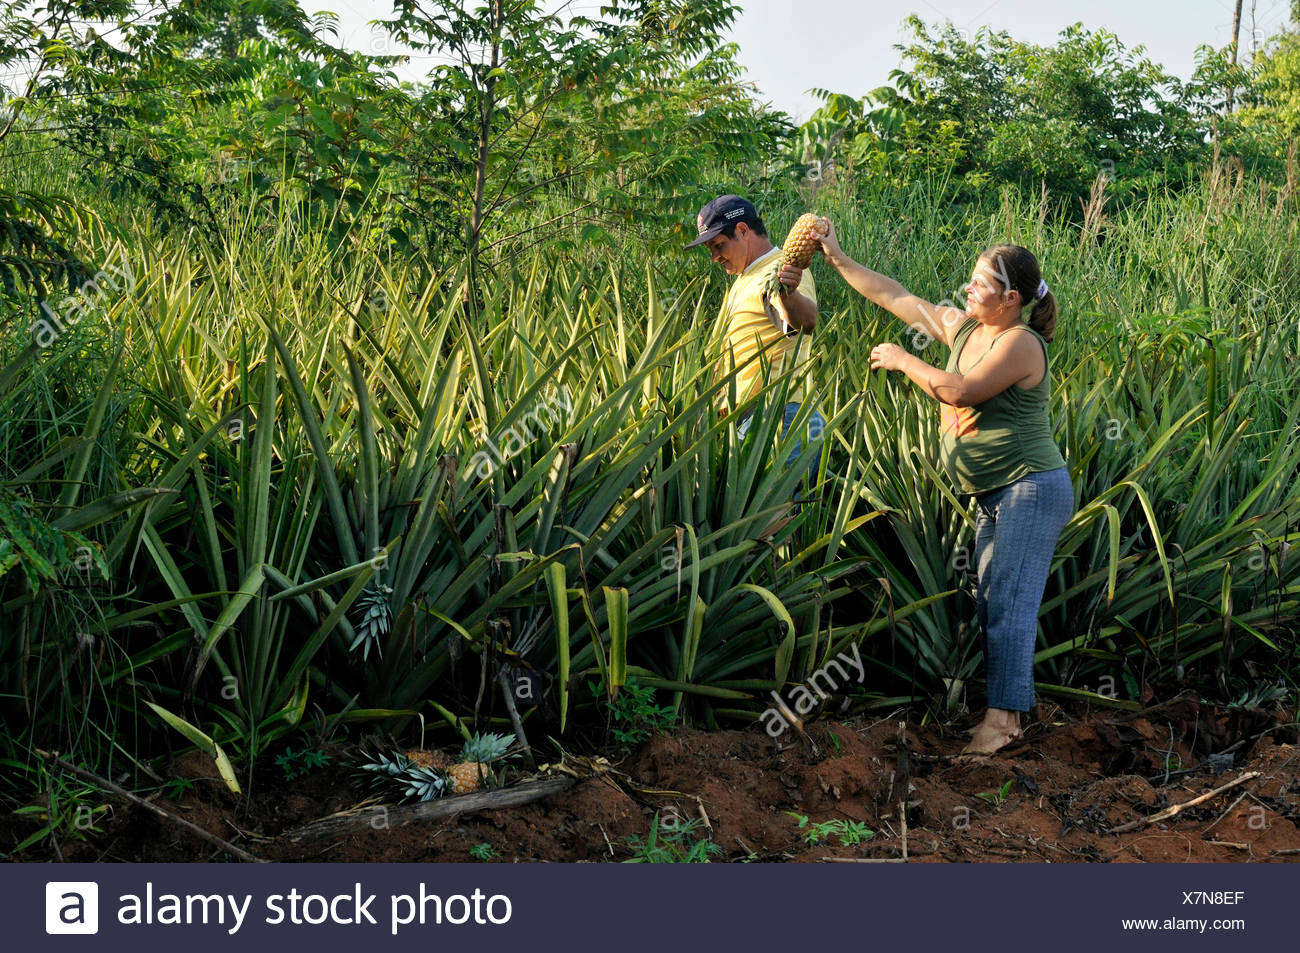 Pineapple harvest by hand, small-scale agriculture in a settlement of formerly landless peasants, land reform - Stock Image